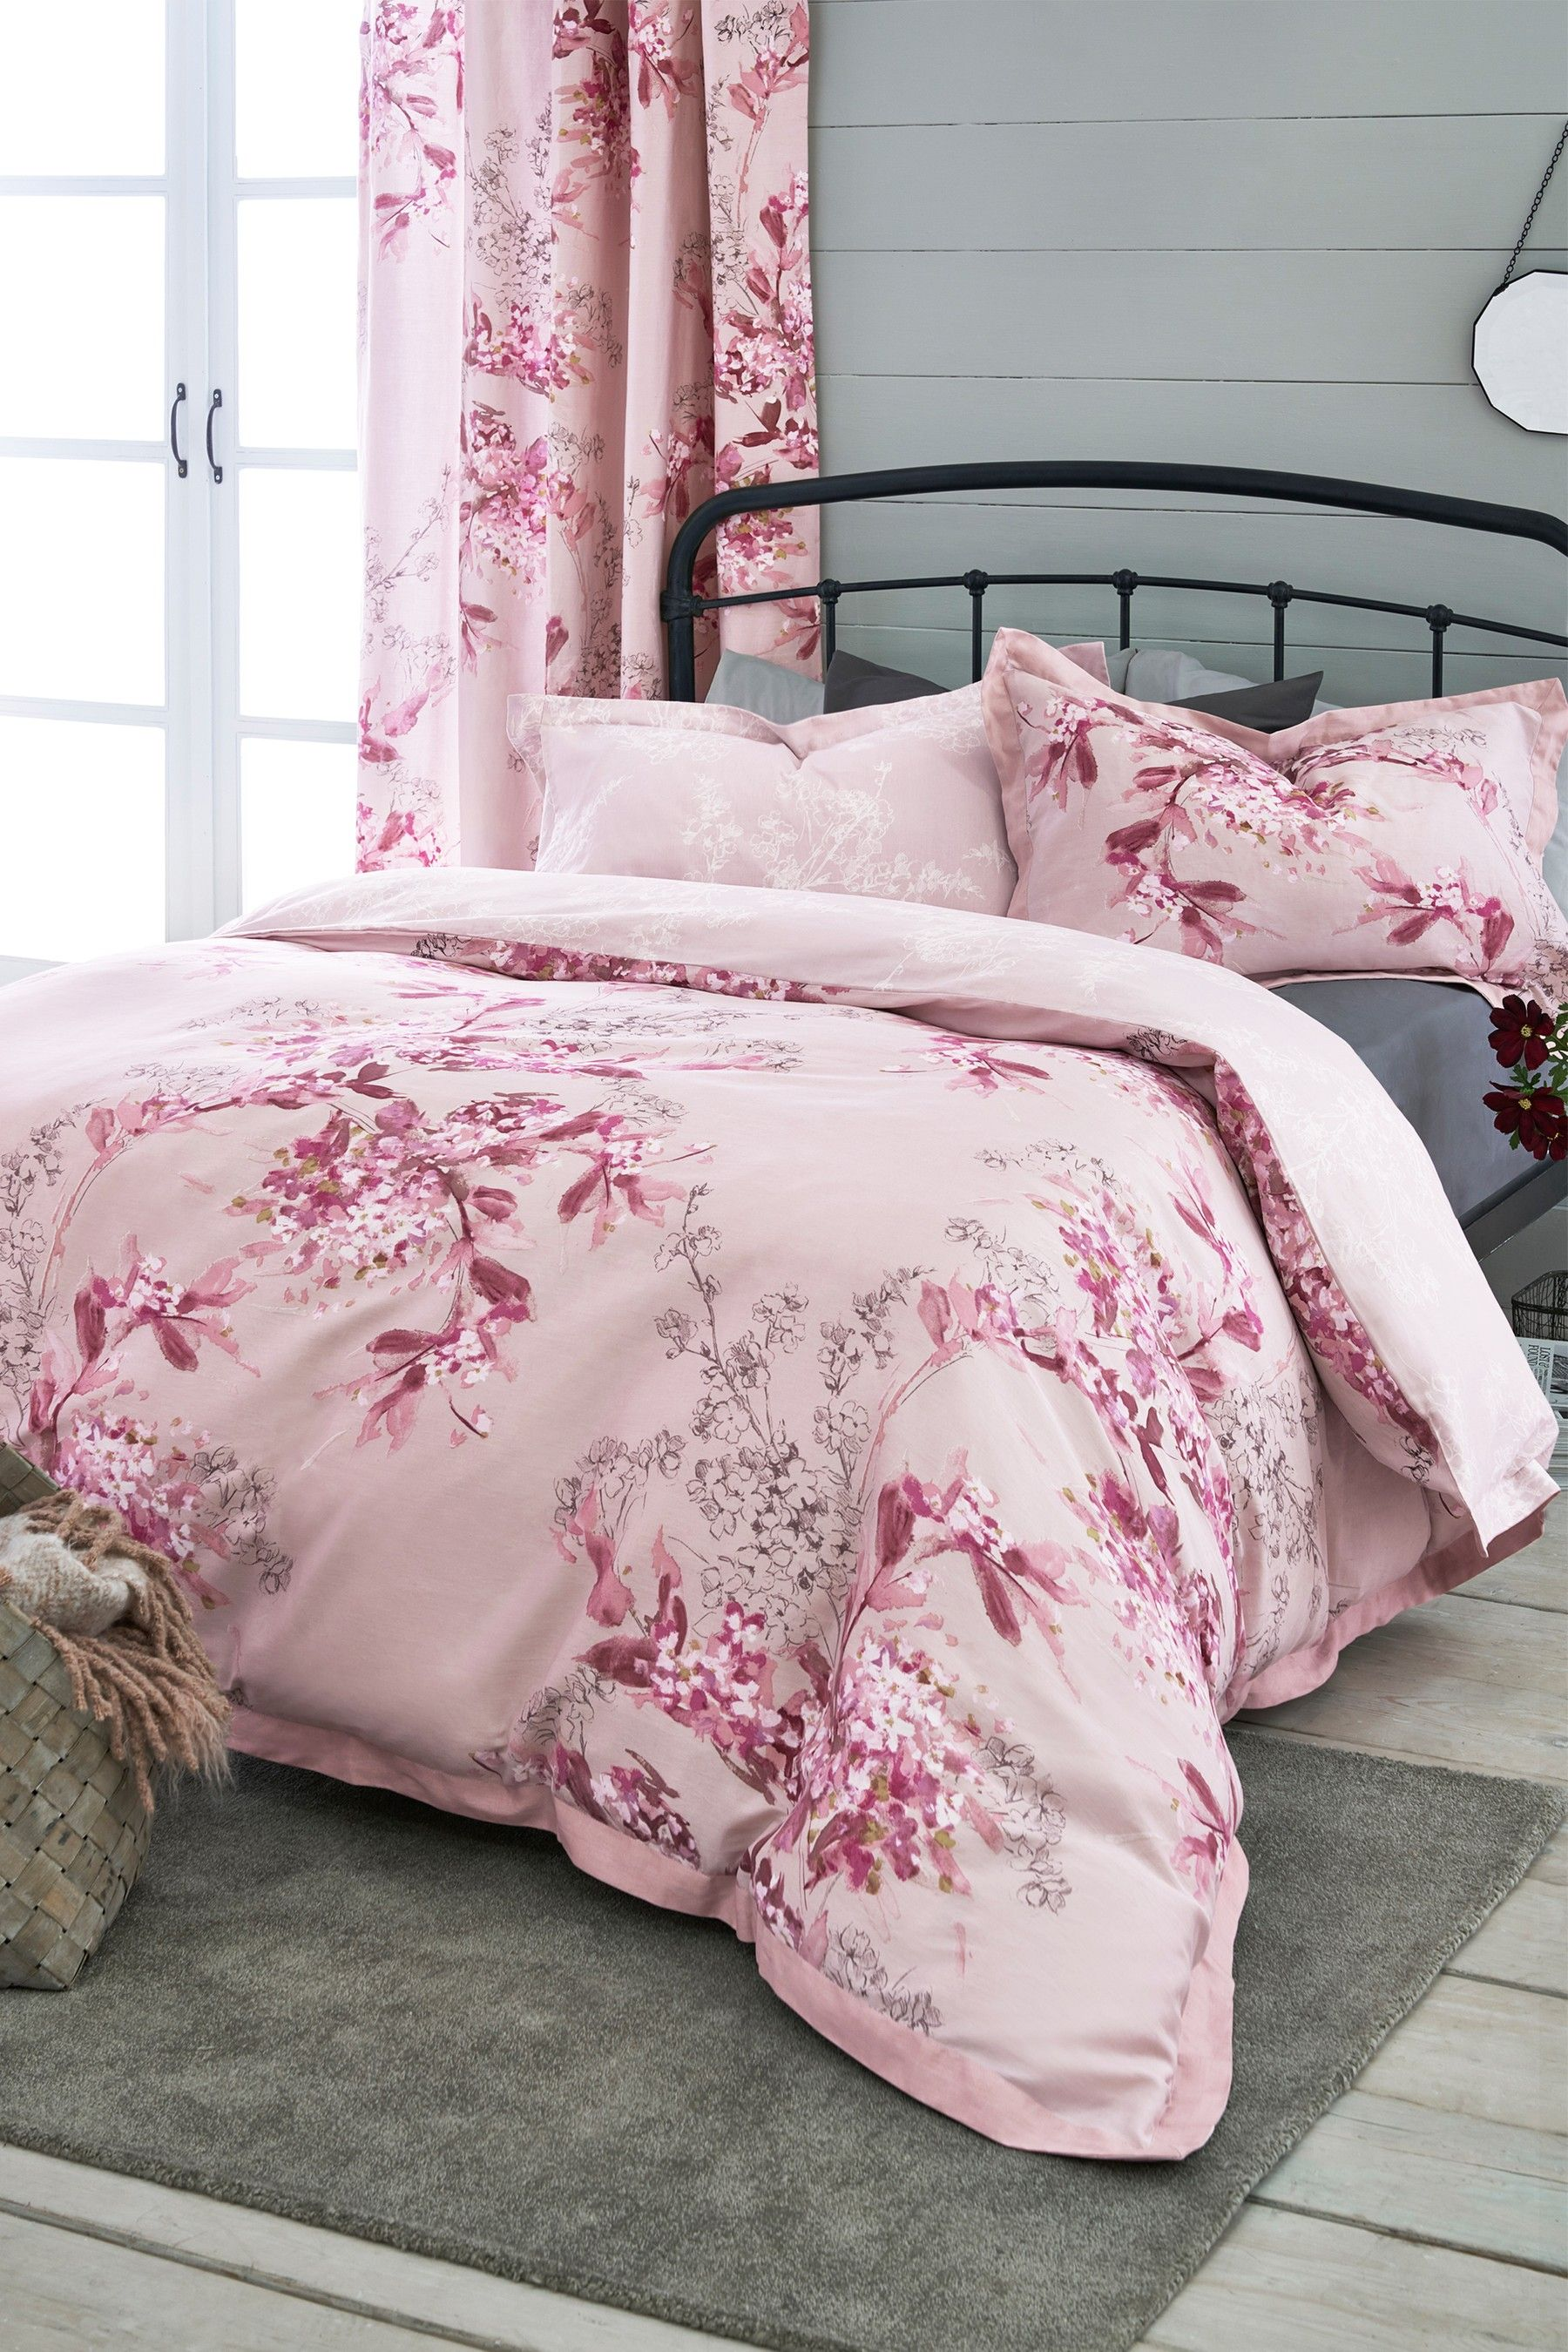 Buy Blossom Floral Duvet Cover and Pillowcase Set from the